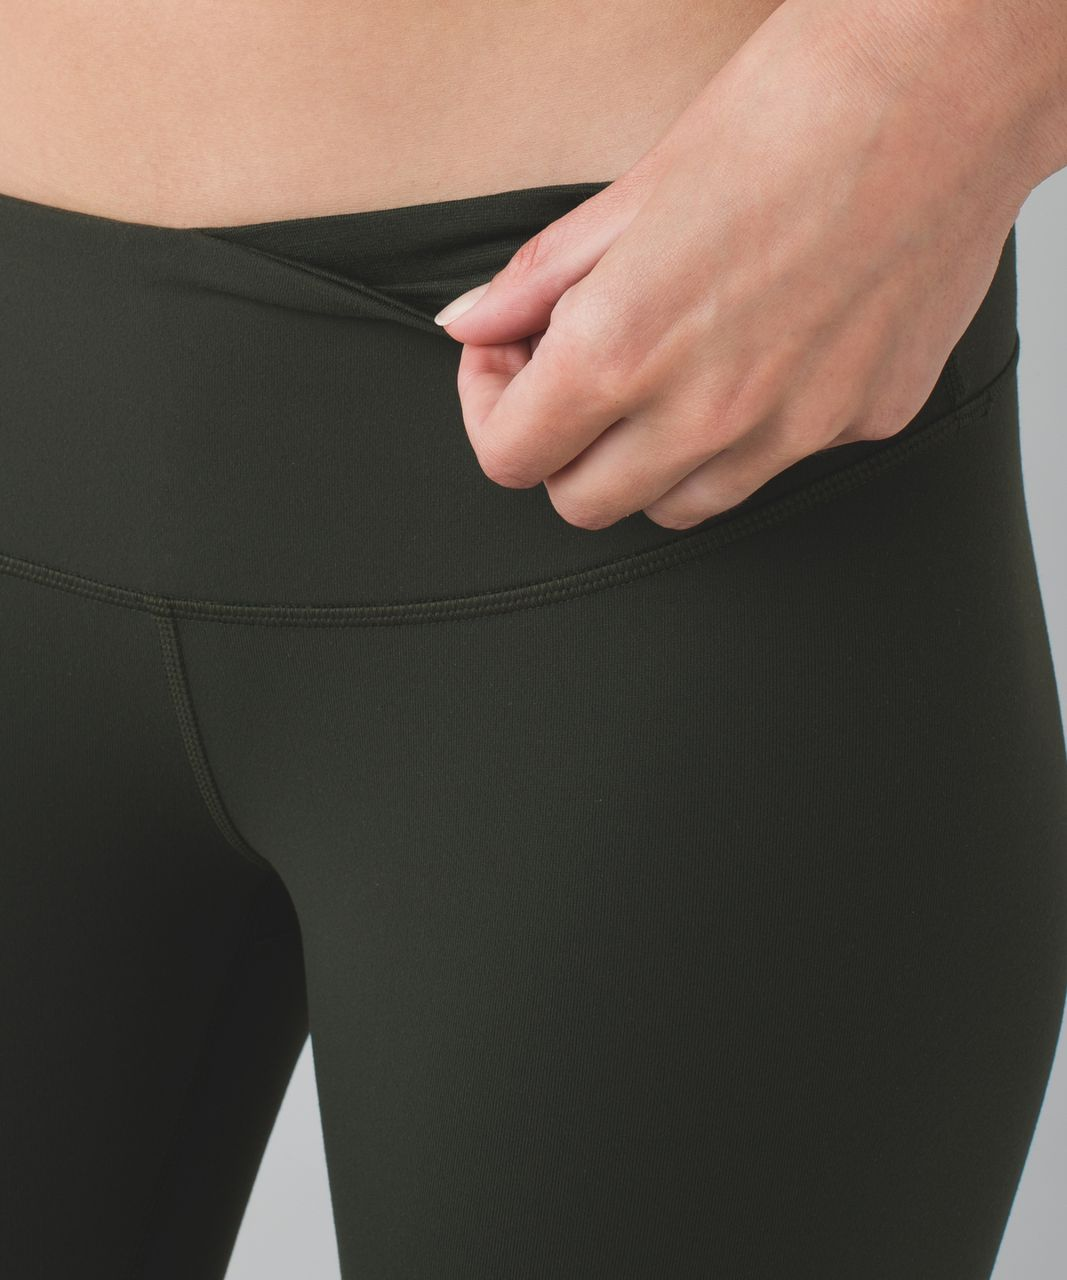 Lululemon Wunder Under Pant III *Full-On Luon - Gator Green